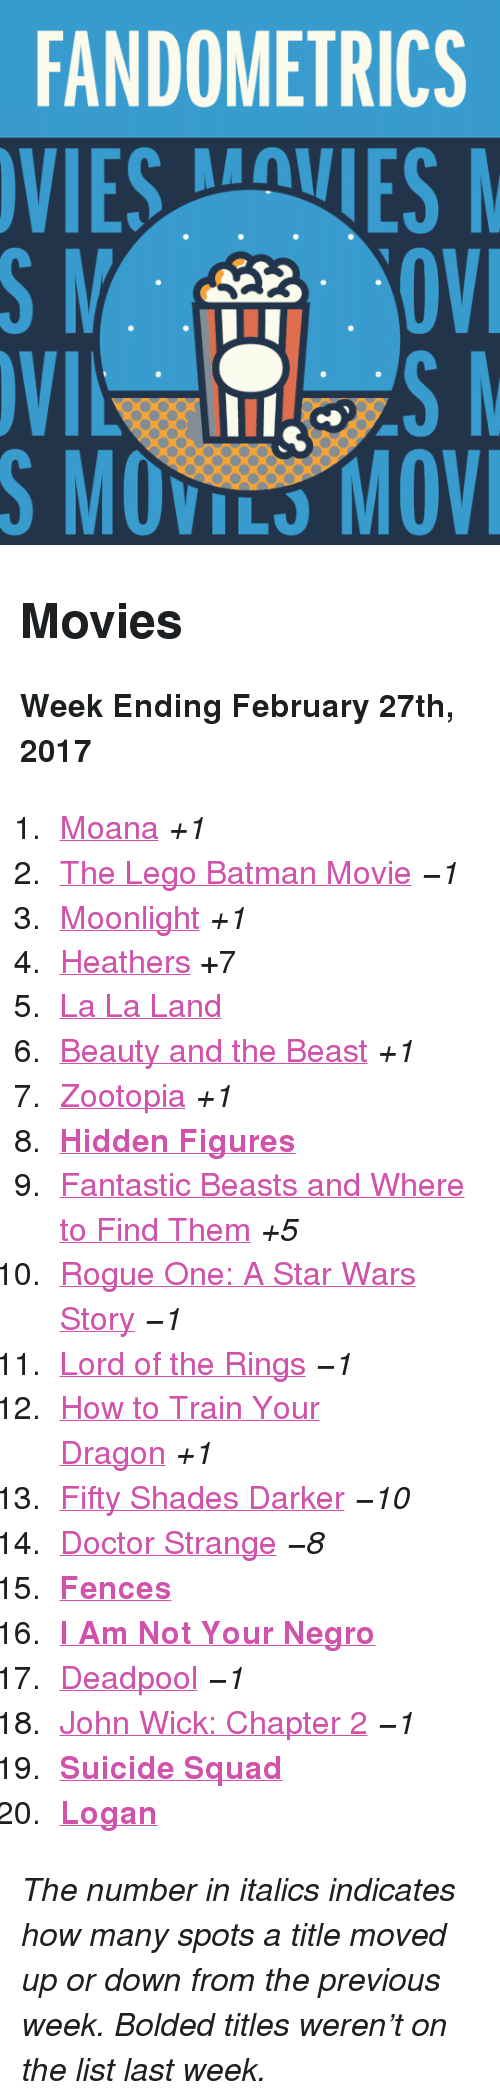 """Batman, Doctor, and John Wick: FANDOMETRICS  VIESVES  S MOVILS MOV <h2>Movies</h2><p><b>Week Ending February 27th, 2017</b></p><ol><li><a href=""""http://www.tumblr.com/search/moana"""">Moana</a><i>+1</i></li>  <li><a href=""""http://www.tumblr.com/search/lego%20batman"""">The Lego Batman Movie</a><i>−1</i></li>  <li><a href=""""http://www.tumblr.com/search/moonlight"""">Moonlight</a><i>+1</i></li>  <li><a href=""""http://www.tumblr.com/search/heathers"""">Heathers</a>+7</li>  <li><a href=""""http://www.tumblr.com/search/la%20la%20land"""">La La Land</a></li>  <li><a href=""""http://www.tumblr.com/search/beauty%20and%20the%20beast"""">Beauty and the Beast</a><i>+1</i></li>  <li><a href=""""http://www.tumblr.com/search/zootopia"""">Zootopia</a><i>+1</i></li>  <li><b><a href=""""http://www.tumblr.com/search/hidden%20figures"""">Hidden Figures</a></b></li>  <li><a href=""""http://www.tumblr.com/search/fantastic%20beasts%20and%20where%20to%20find%20them"""">Fantastic Beasts and Where to Find Them</a><i>+5</i></li>  <li><a href=""""http://www.tumblr.com/search/rogue%20one"""">Rogue One: A Star Wars Story</a><i>−1</i></li>  <li><a href=""""http://www.tumblr.com/search/lotr"""">Lord of the Rings</a><i>−1</i></li>  <li><a href=""""http://www.tumblr.com/search/httyd"""">How to Train Your Dragon</a><i>+1</i></li>  <li><a href=""""http://www.tumblr.com/search/fifty%20shades%20darker"""">Fifty Shades Darker</a><i>−10</i></li>  <li><a href=""""http://www.tumblr.com/search/doctor%20strange"""">Doctor Strange</a><i>−8</i></li>  <li><b><a href=""""http://www.tumblr.com/search/fences"""">Fences</a></b></li>  <li><a href=""""http://www.tumblr.com/search/i%20am%20not%20your%20negro""""><b>I Am Not Your Negro</b></a></li>  <li><a href=""""http://www.tumblr.com/search/deadpool"""">Deadpool</a><i>−1</i></li>  <li><a href=""""http://www.tumblr.com/search/john%20wick"""">John Wick: Chapter 2</a><i>−1</i></li>  <li><a href=""""http://www.tumblr.com/search/suicide%20squad""""><b>Suicide Squad</b></a></li>  <li><a href=""""http://www.tumblr.com/search/logan""""><b>Logan</b></a></li></ol><p><i>The number in ita"""